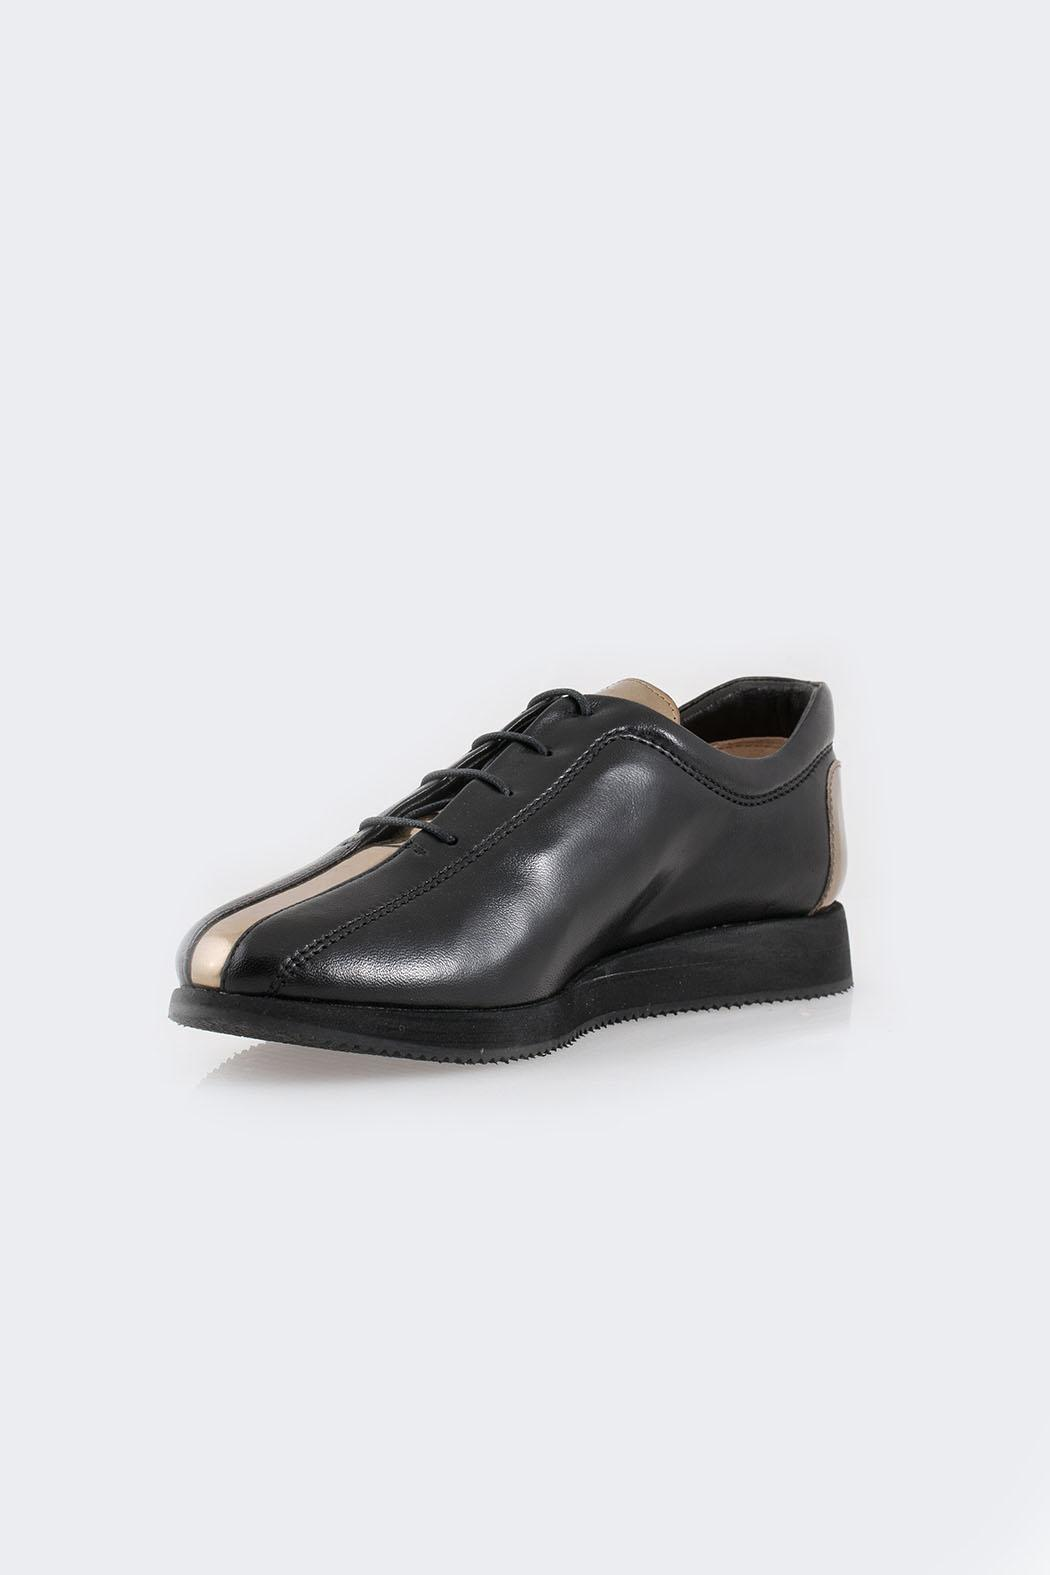 Parlanti Black Sneakers - Main Image